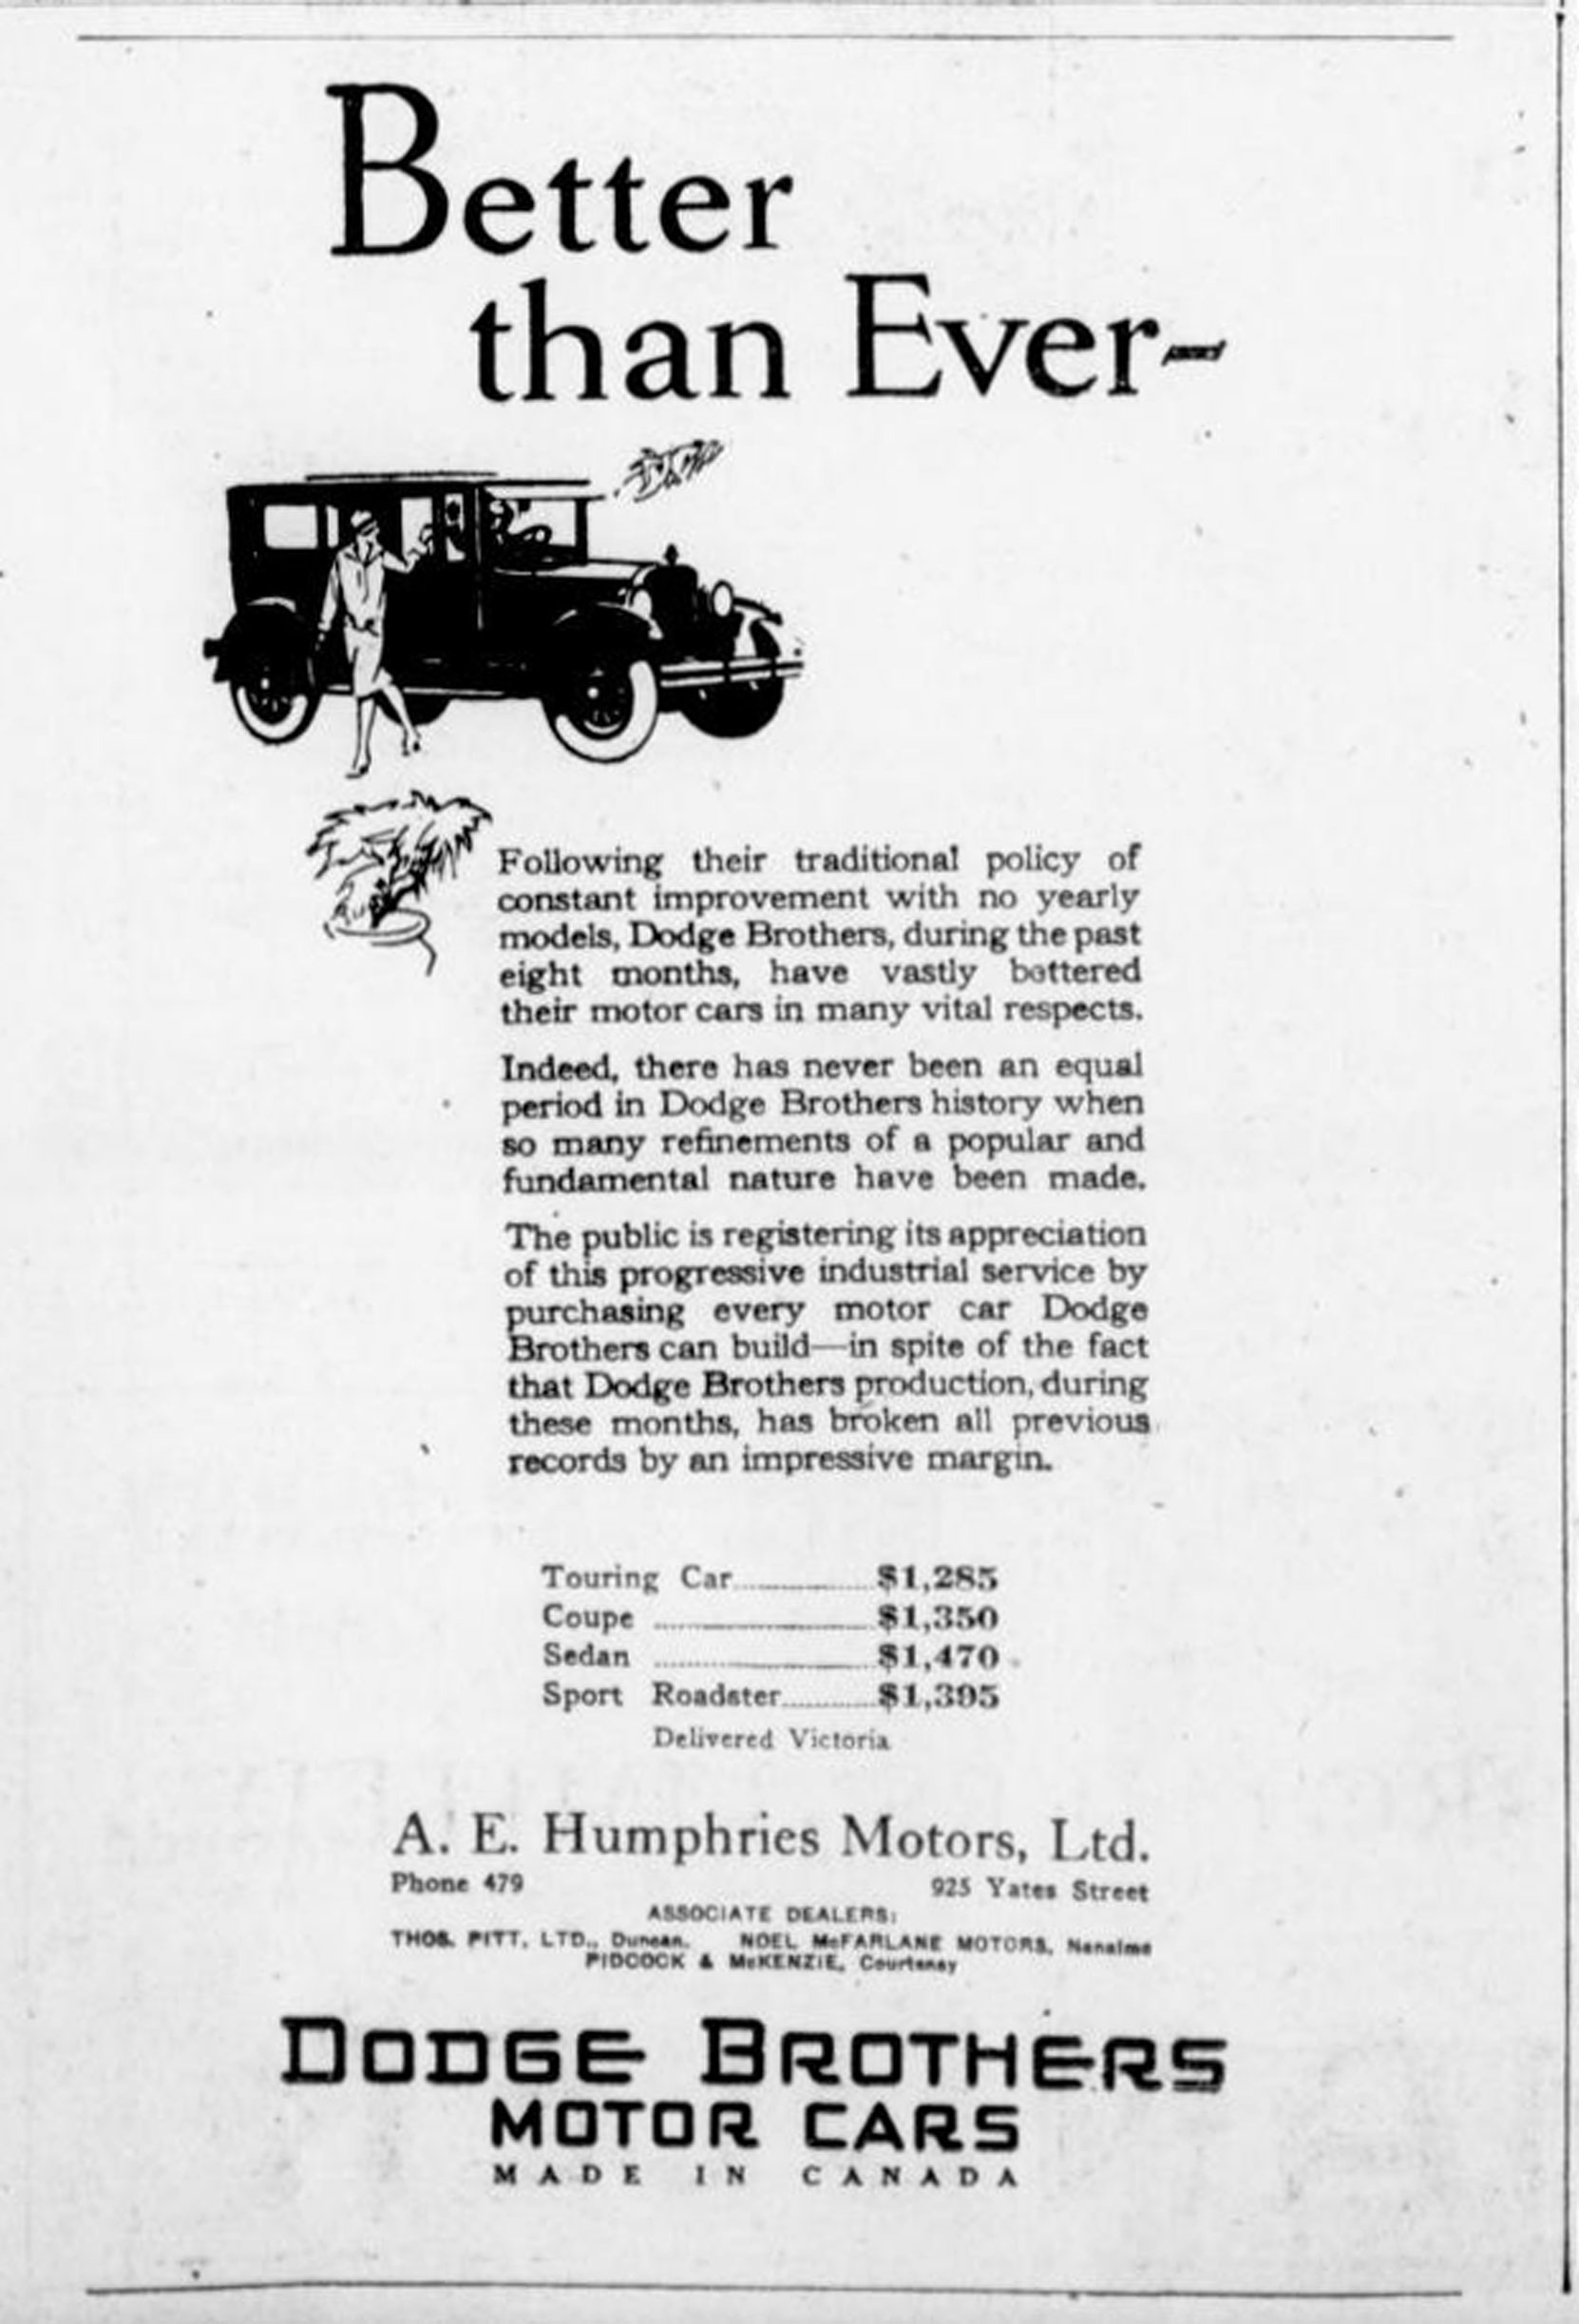 1926 advertisement for Dodge Brothers Motor Cars, showing the Vancouver Island Dodge dealers, including Thomas Pitt, Duncan (photo by Temple Lodge No. 33 Historian)